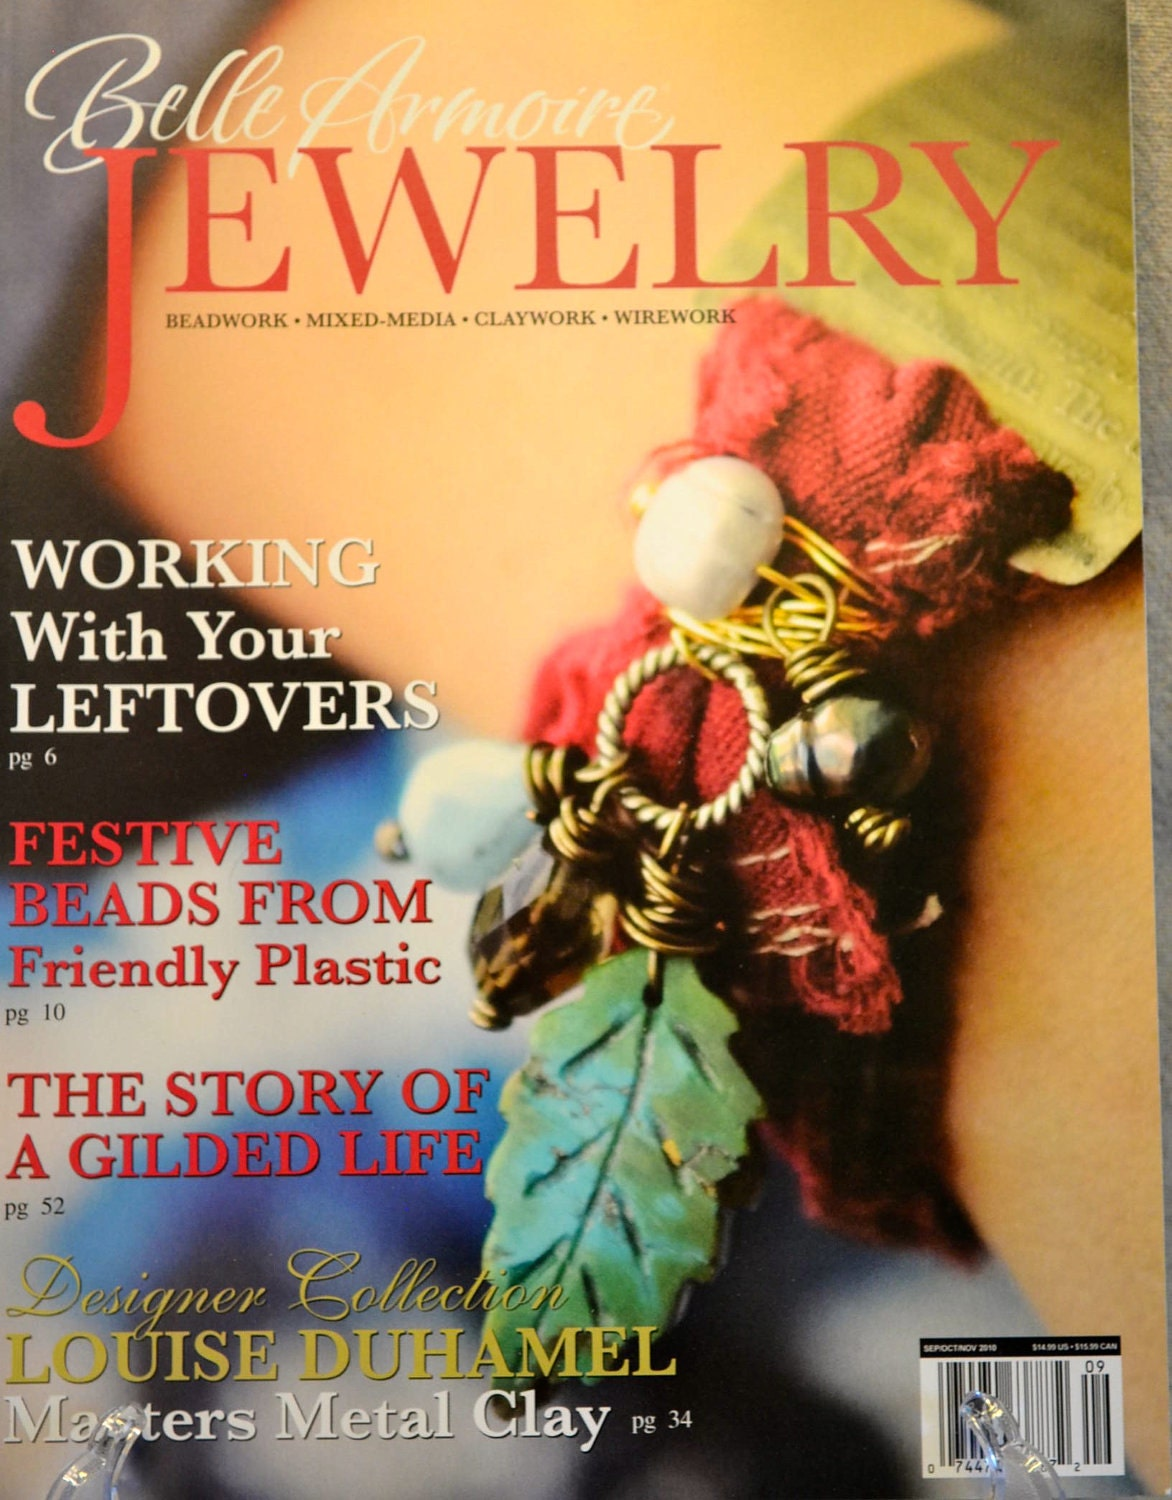 Belle armoire jewelry magazine fall 2010 by veronicasgarden for Belle armoire jewelry magazine subscription